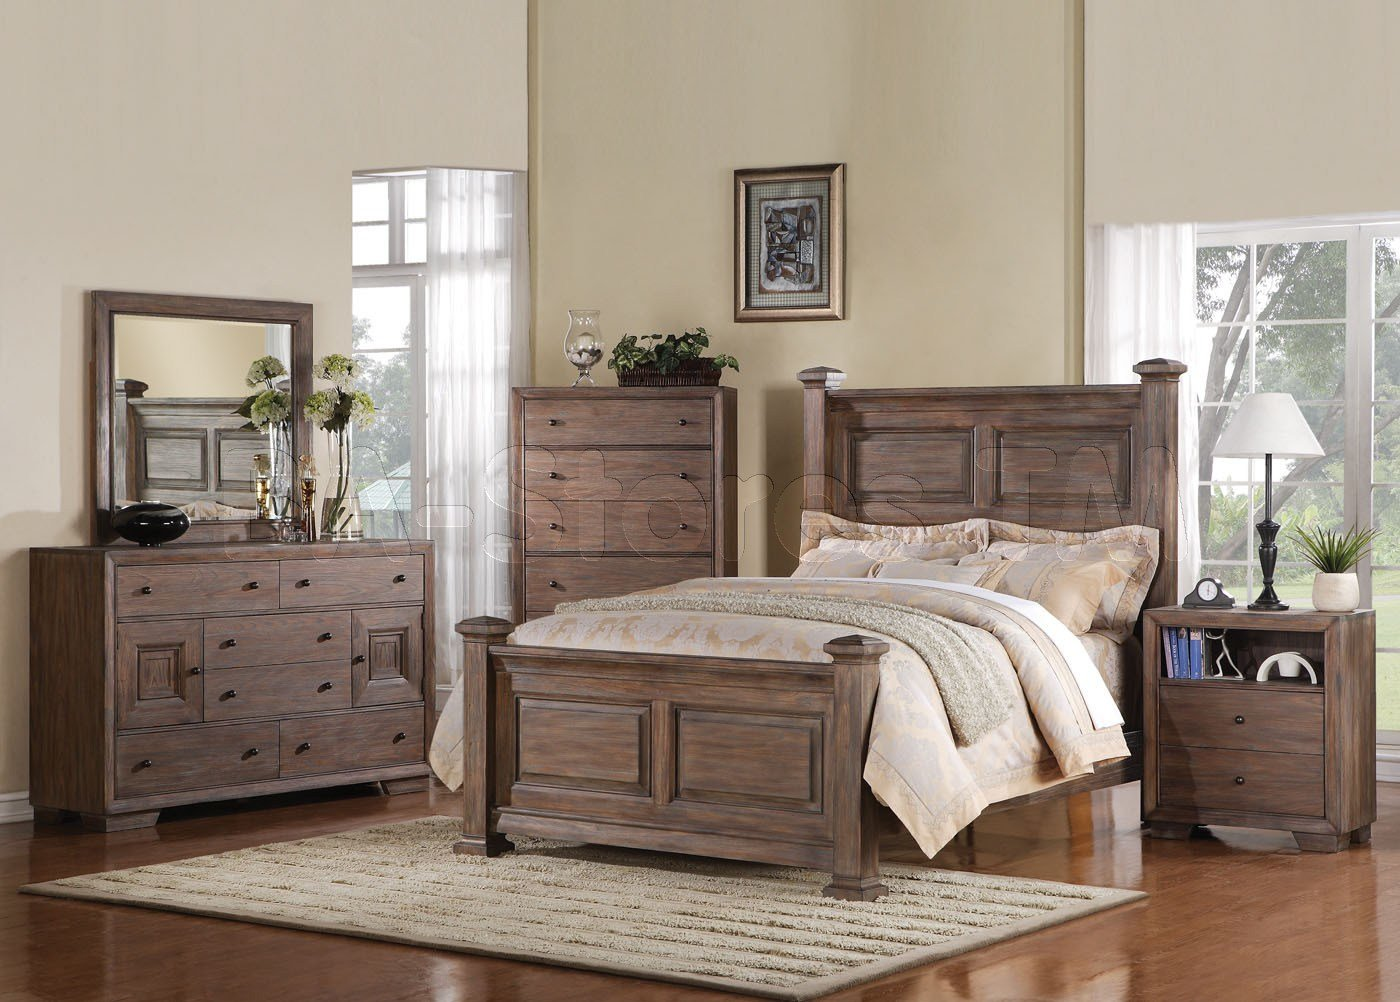 Best Equinox Dresser In Distressed Ash Acme Furniture 117720 With Pictures